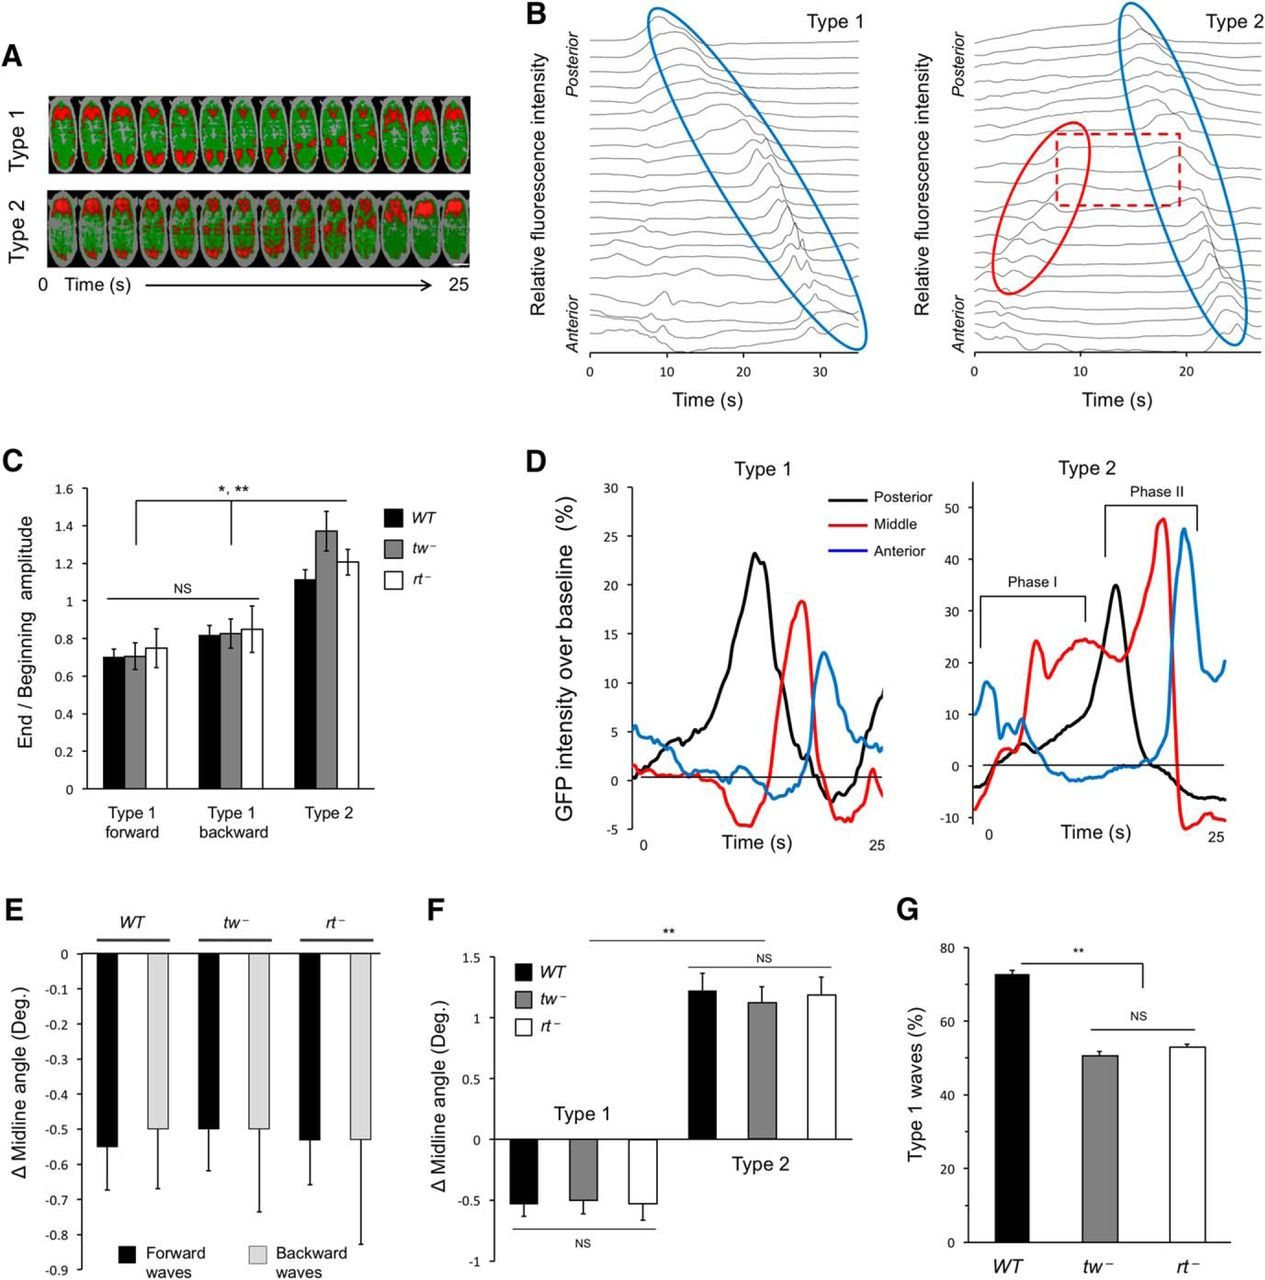 Protein O Mannosyltransferases Affect Sensory Axon Wiring And Color Lights Organ Circuit Using Cmos Ics Download Figure Open In New Tab